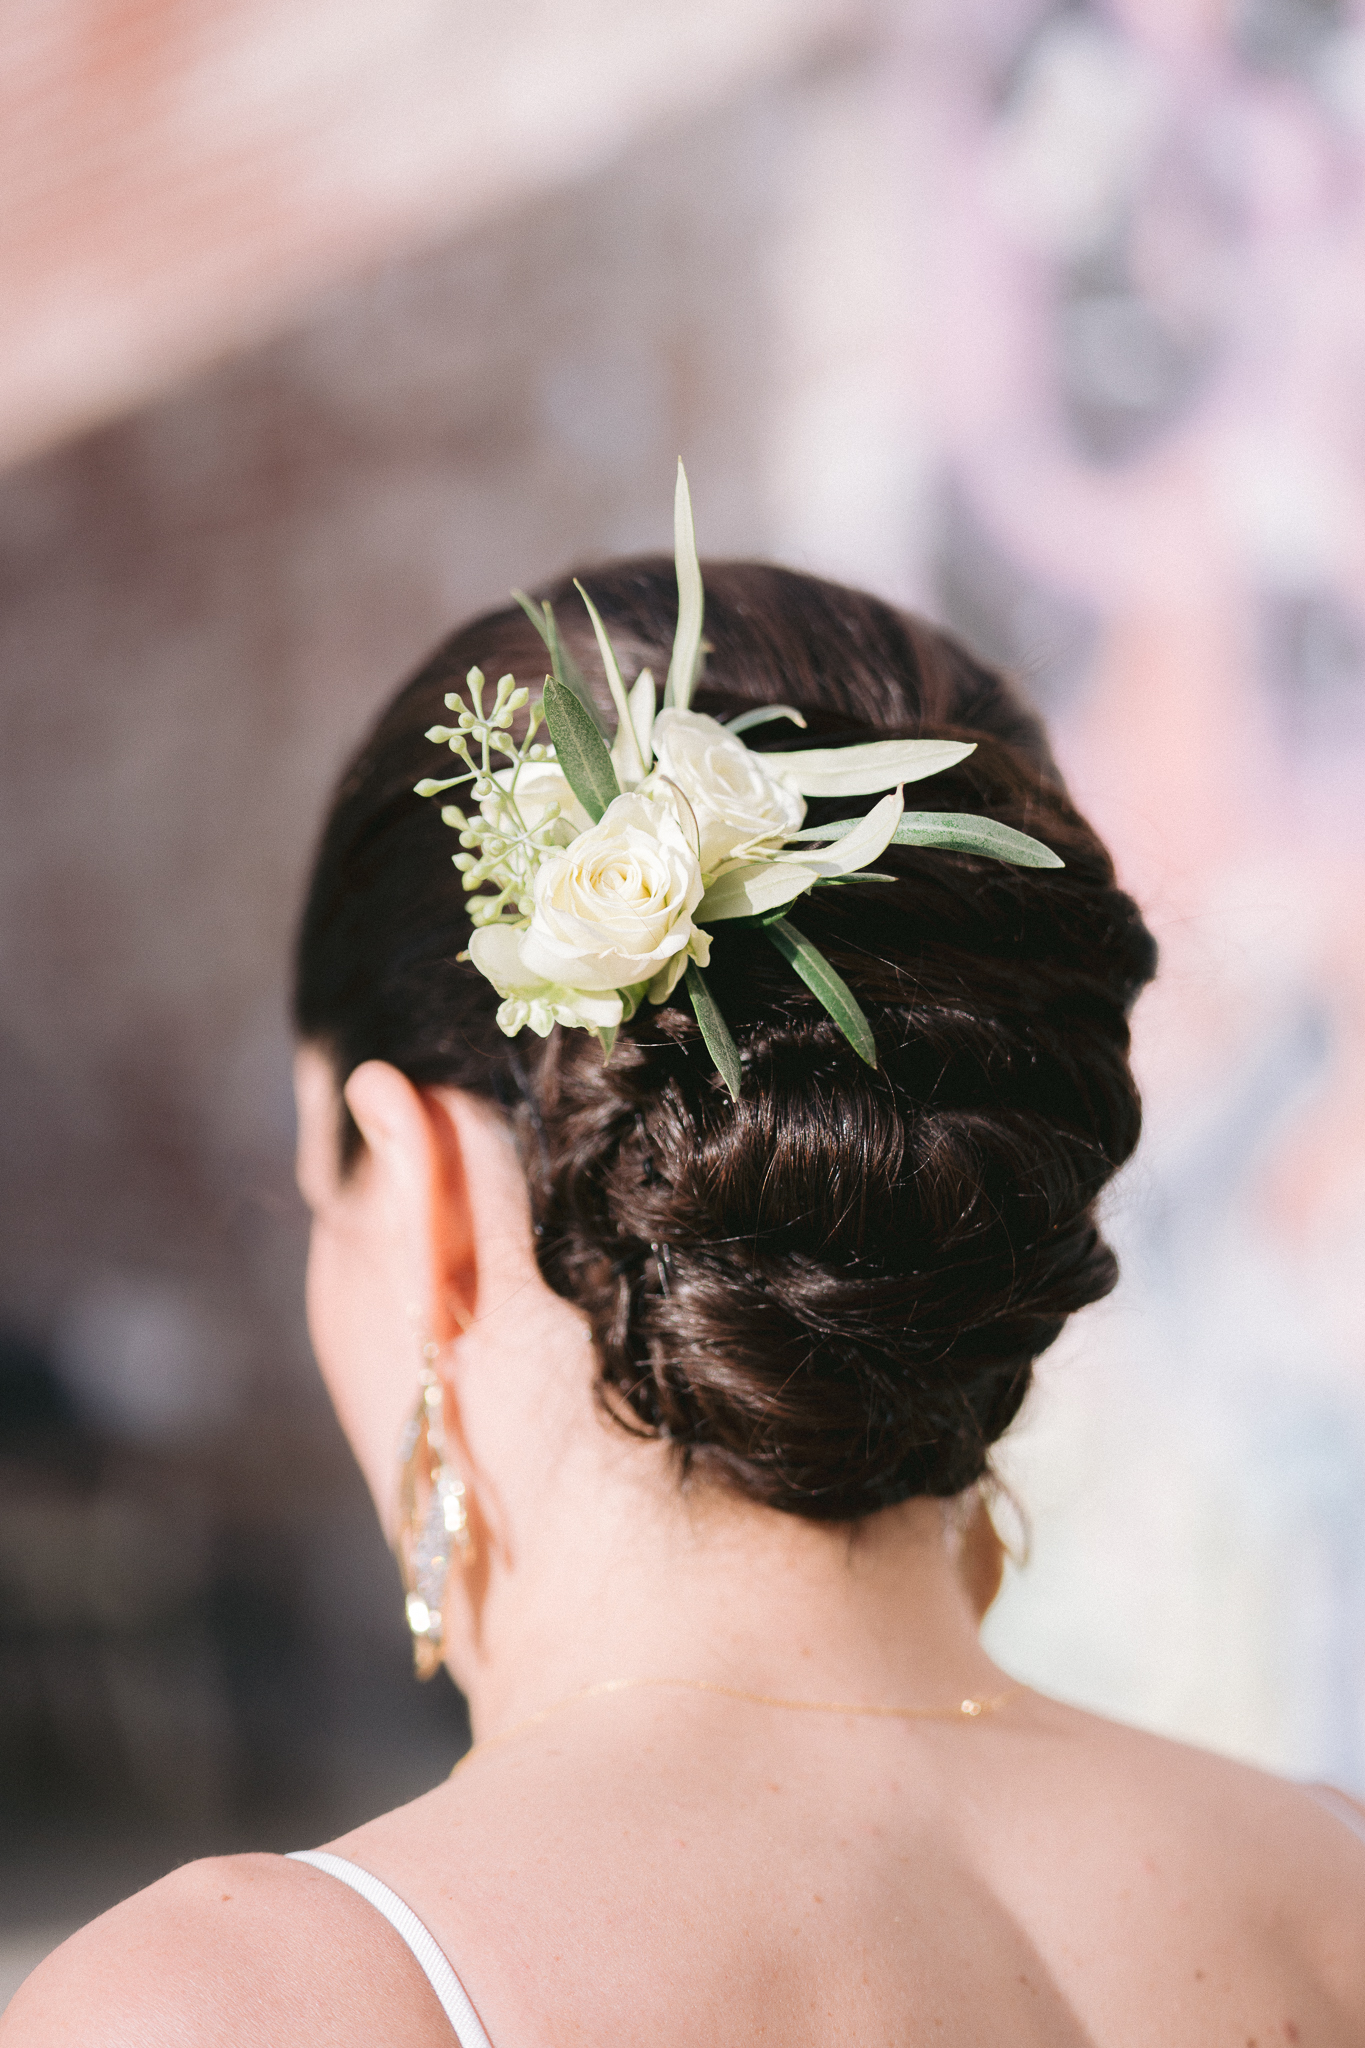 close up of bridal hair style with a flower in urban san francisco street backdrop